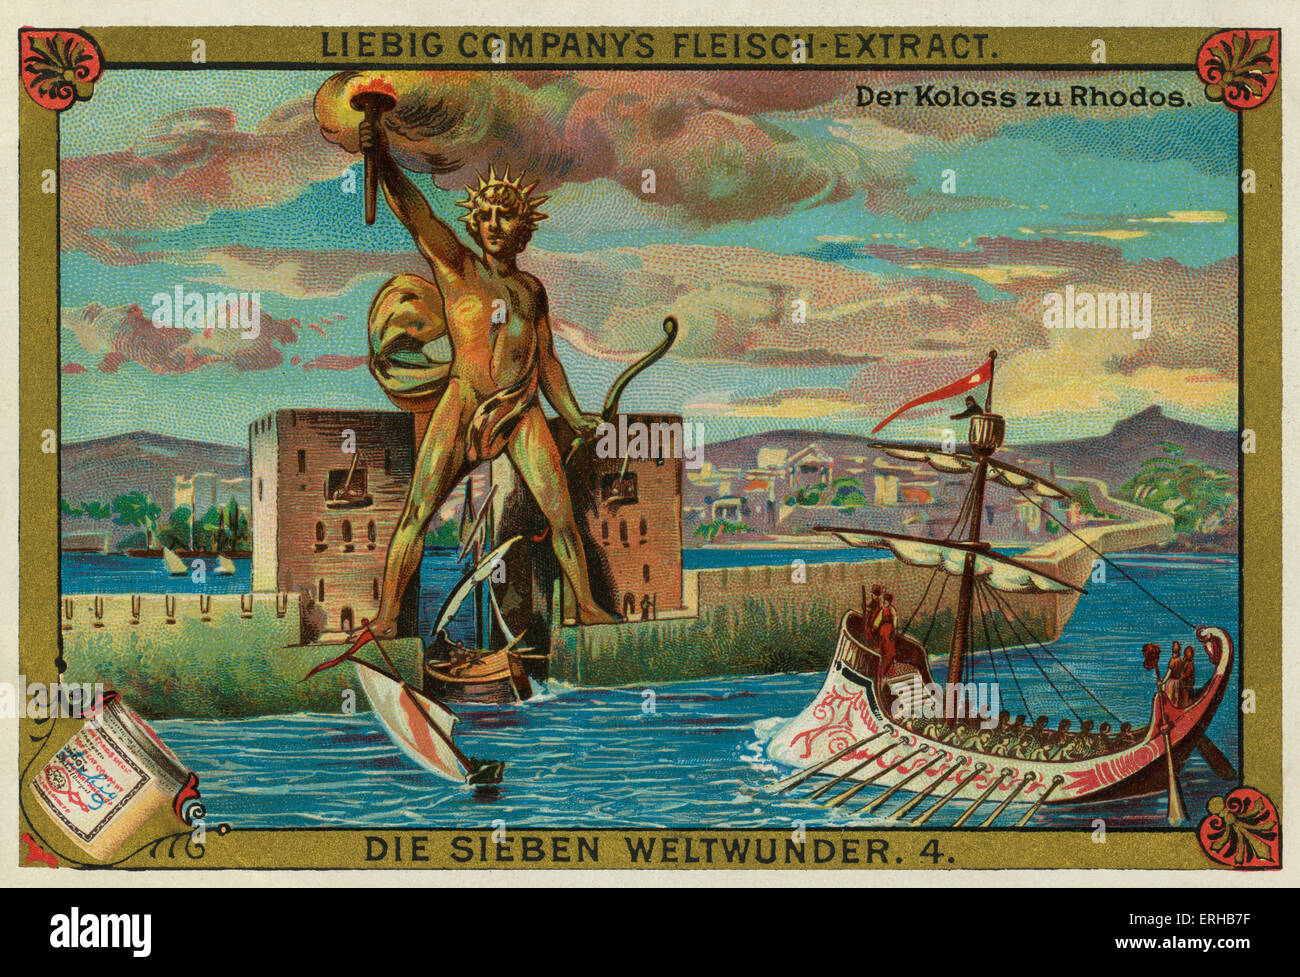 Colossus of Rhodes (German: Der Koloss zu Rhodos).  Statue of the Greek Titan Helios  built on Rhodes by Chares - Stock Image